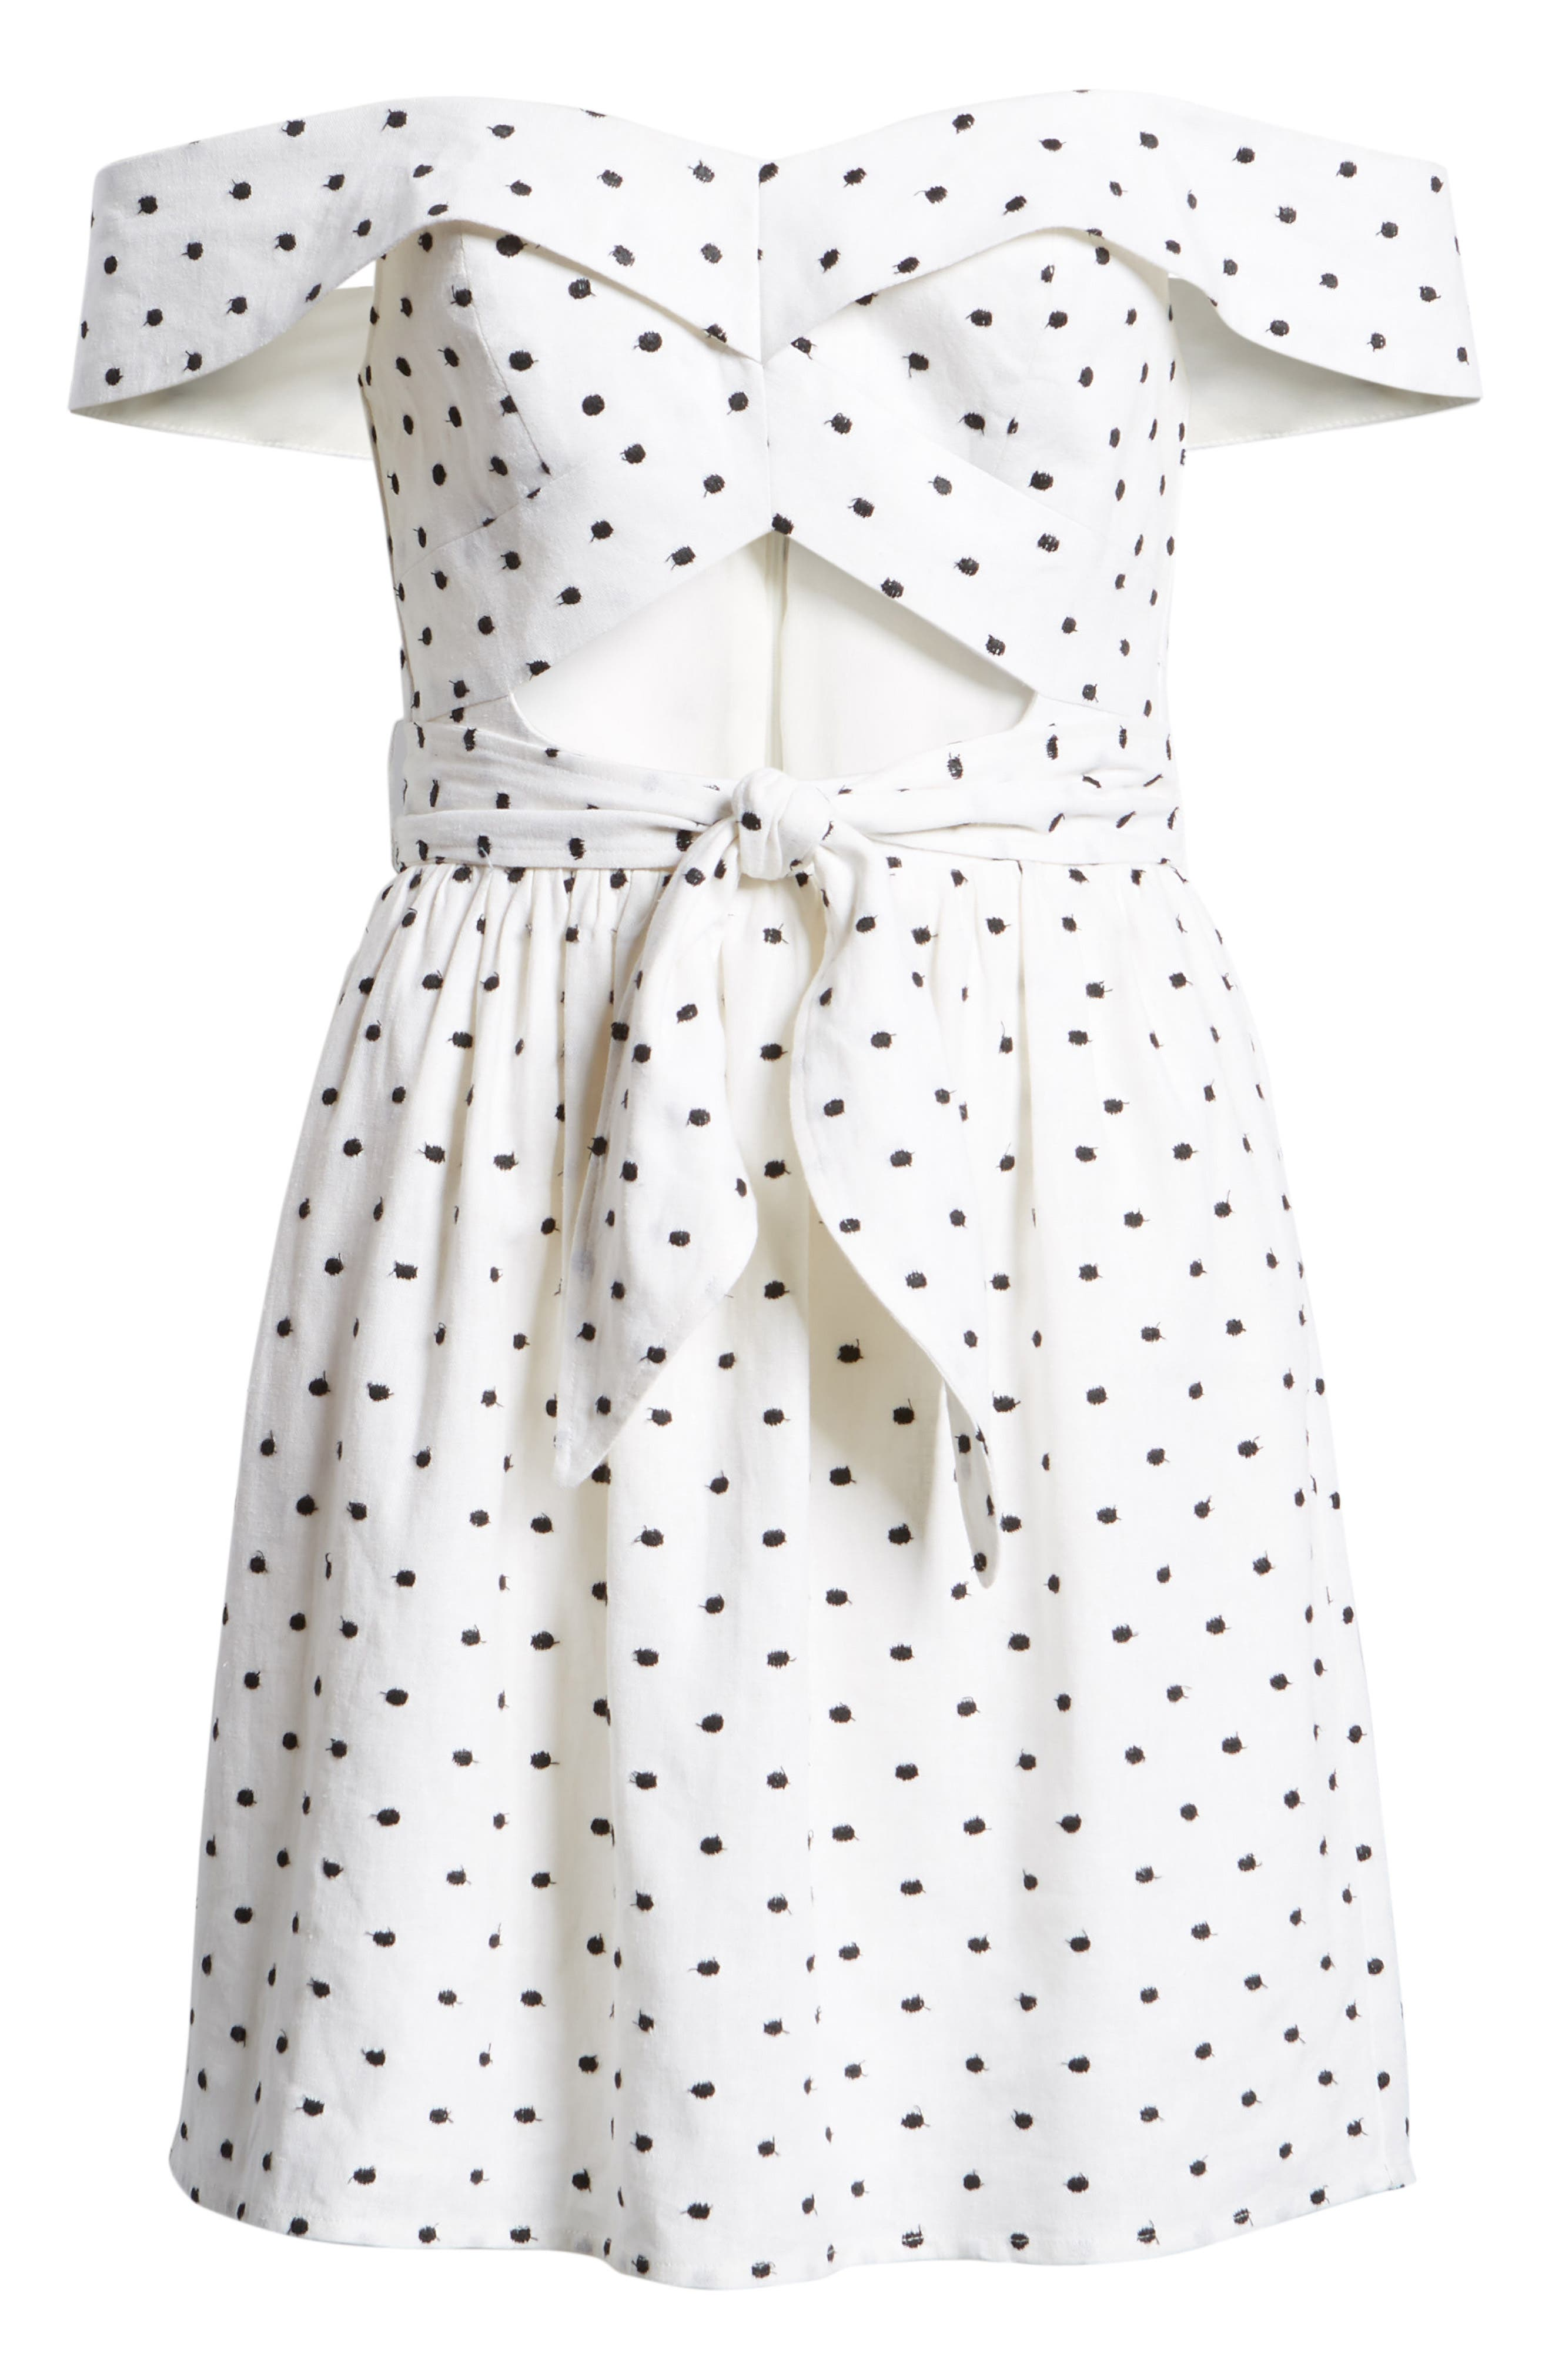 Capri Knot Cutout Minidress,                             Alternate thumbnail 8, color,                             Ivory Polka Dot